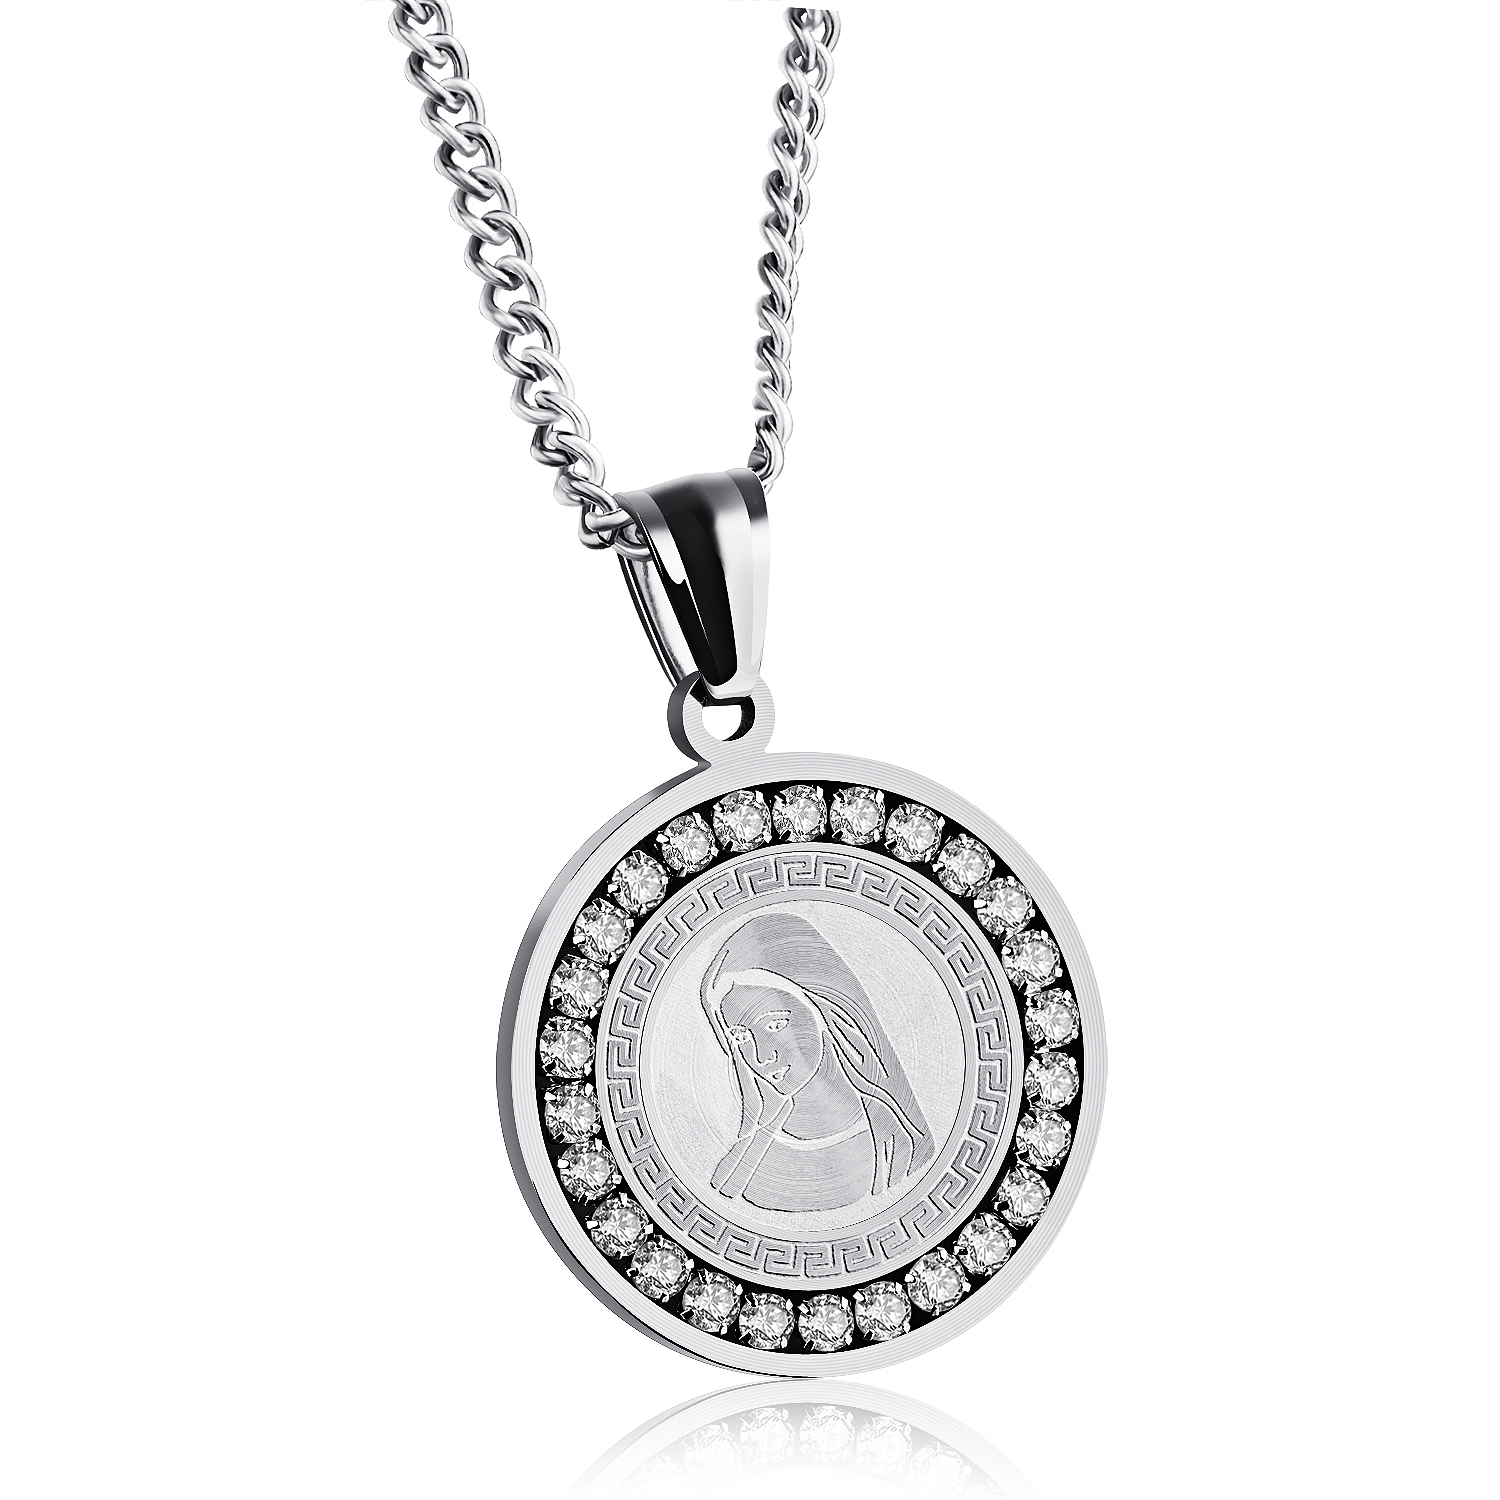 City Fashion Jewelry <font><b>Male</b></font> Female Accessories The Virgin <font><b>Mary</b></font> Stainless Steel Inlaid CZ Diamond Man Woman Pendant Necklace CX1141